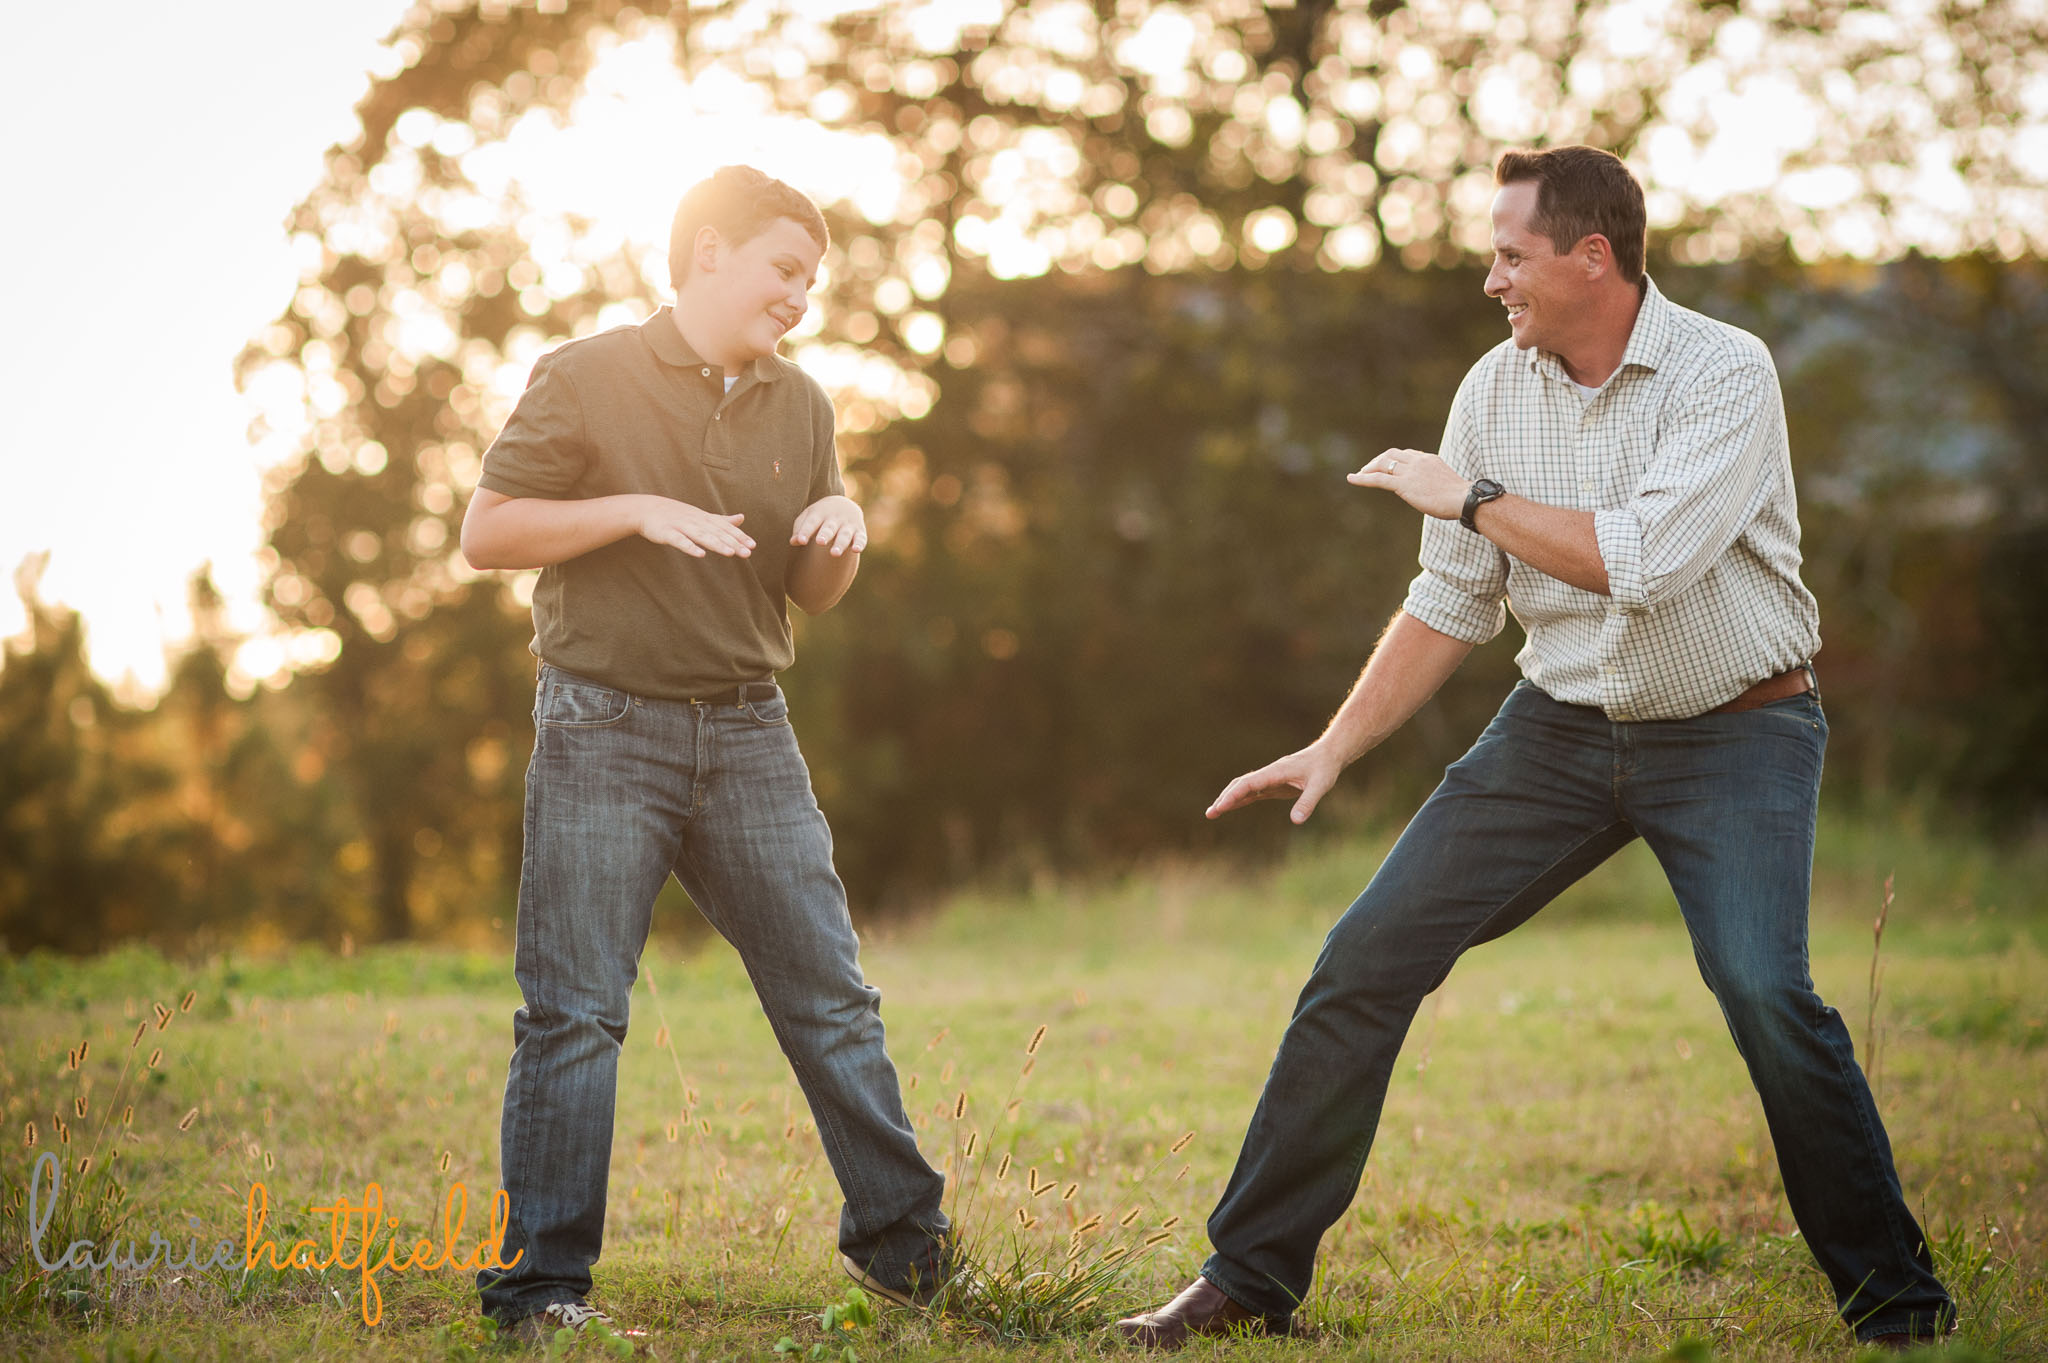 dad and son playing karate in a field | Mobile family photographer